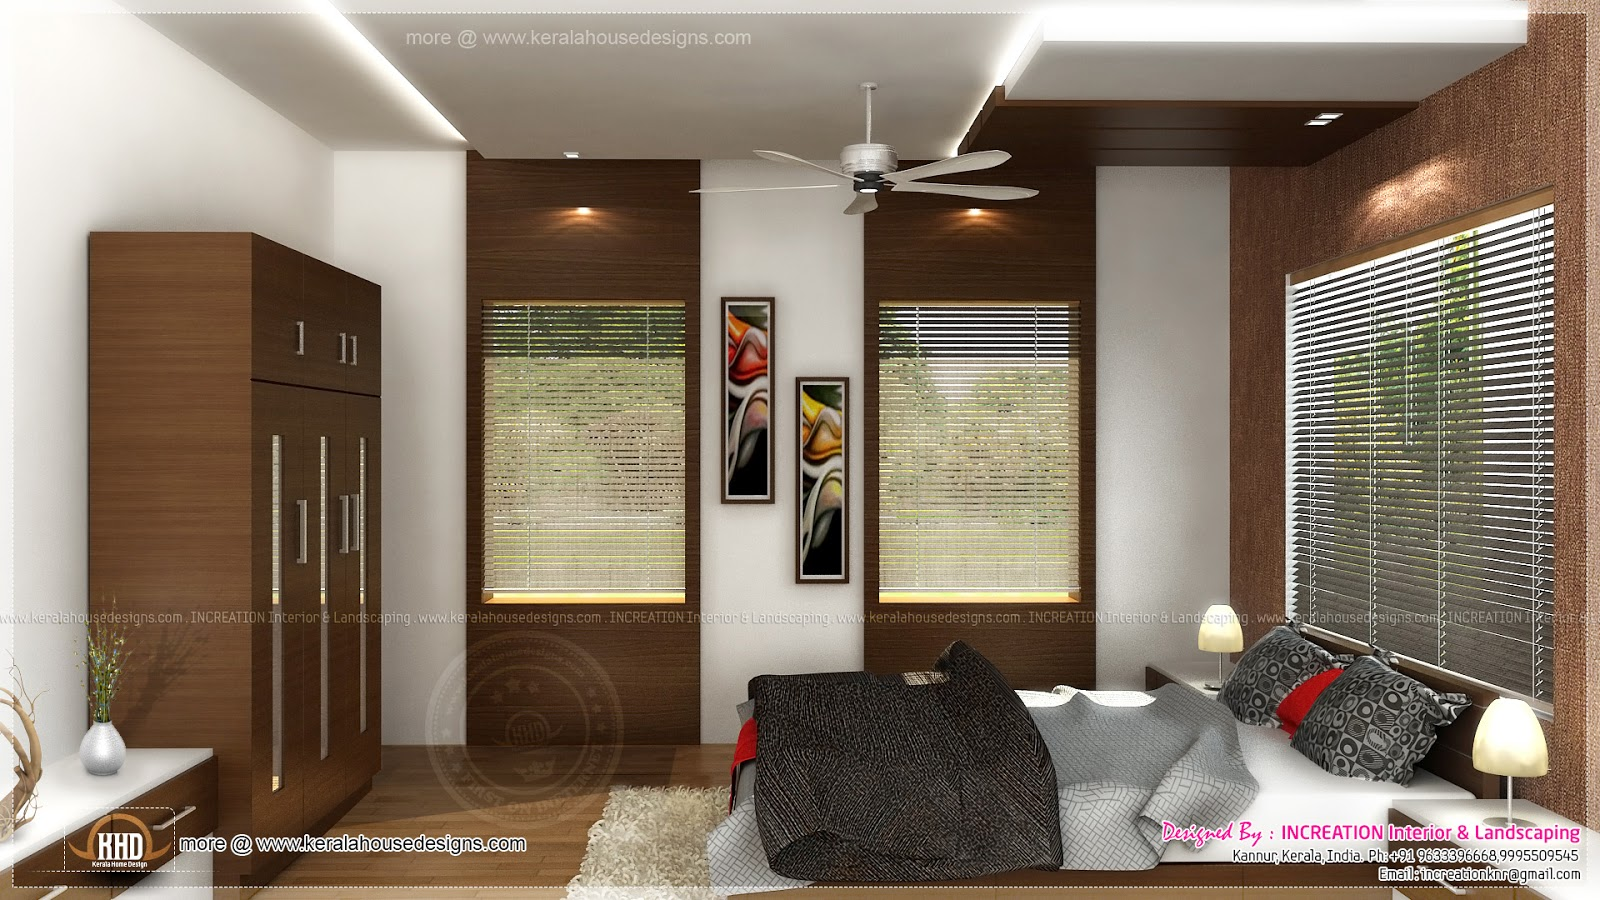 Interior designs from kannur kerala home kerala plans for Bathroom interior design kerala